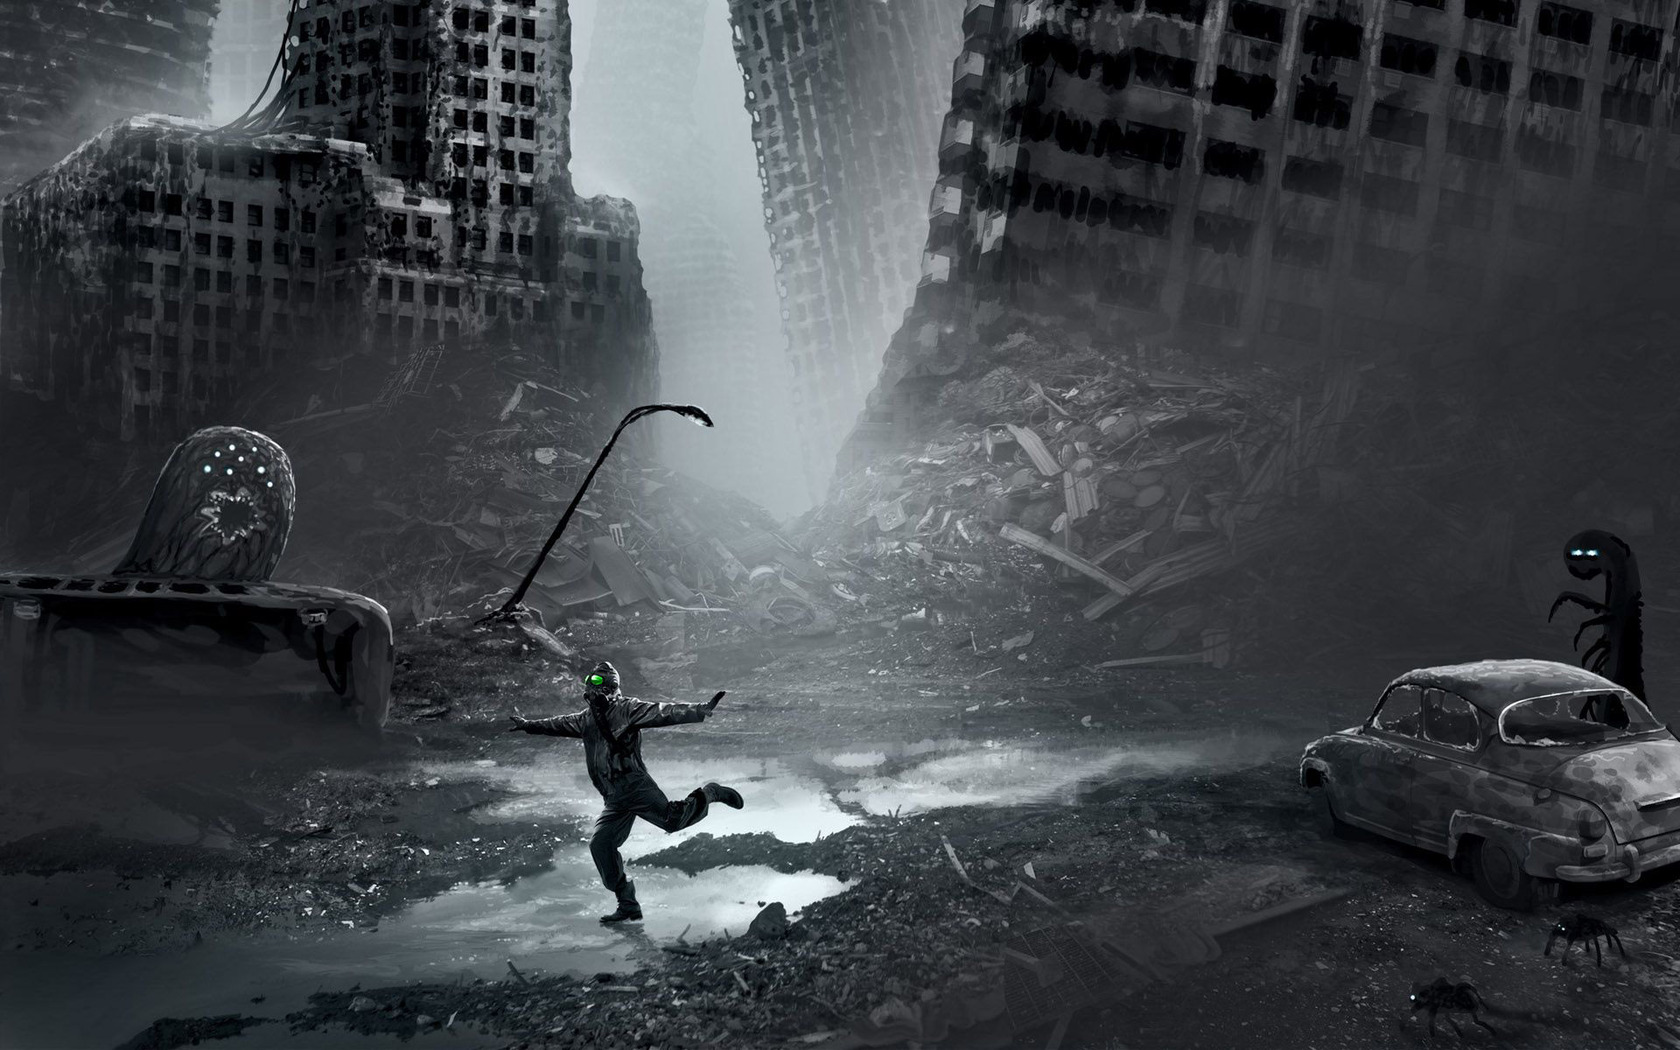 Romantically Apocalyptic wallpaper 17999 1680x1050